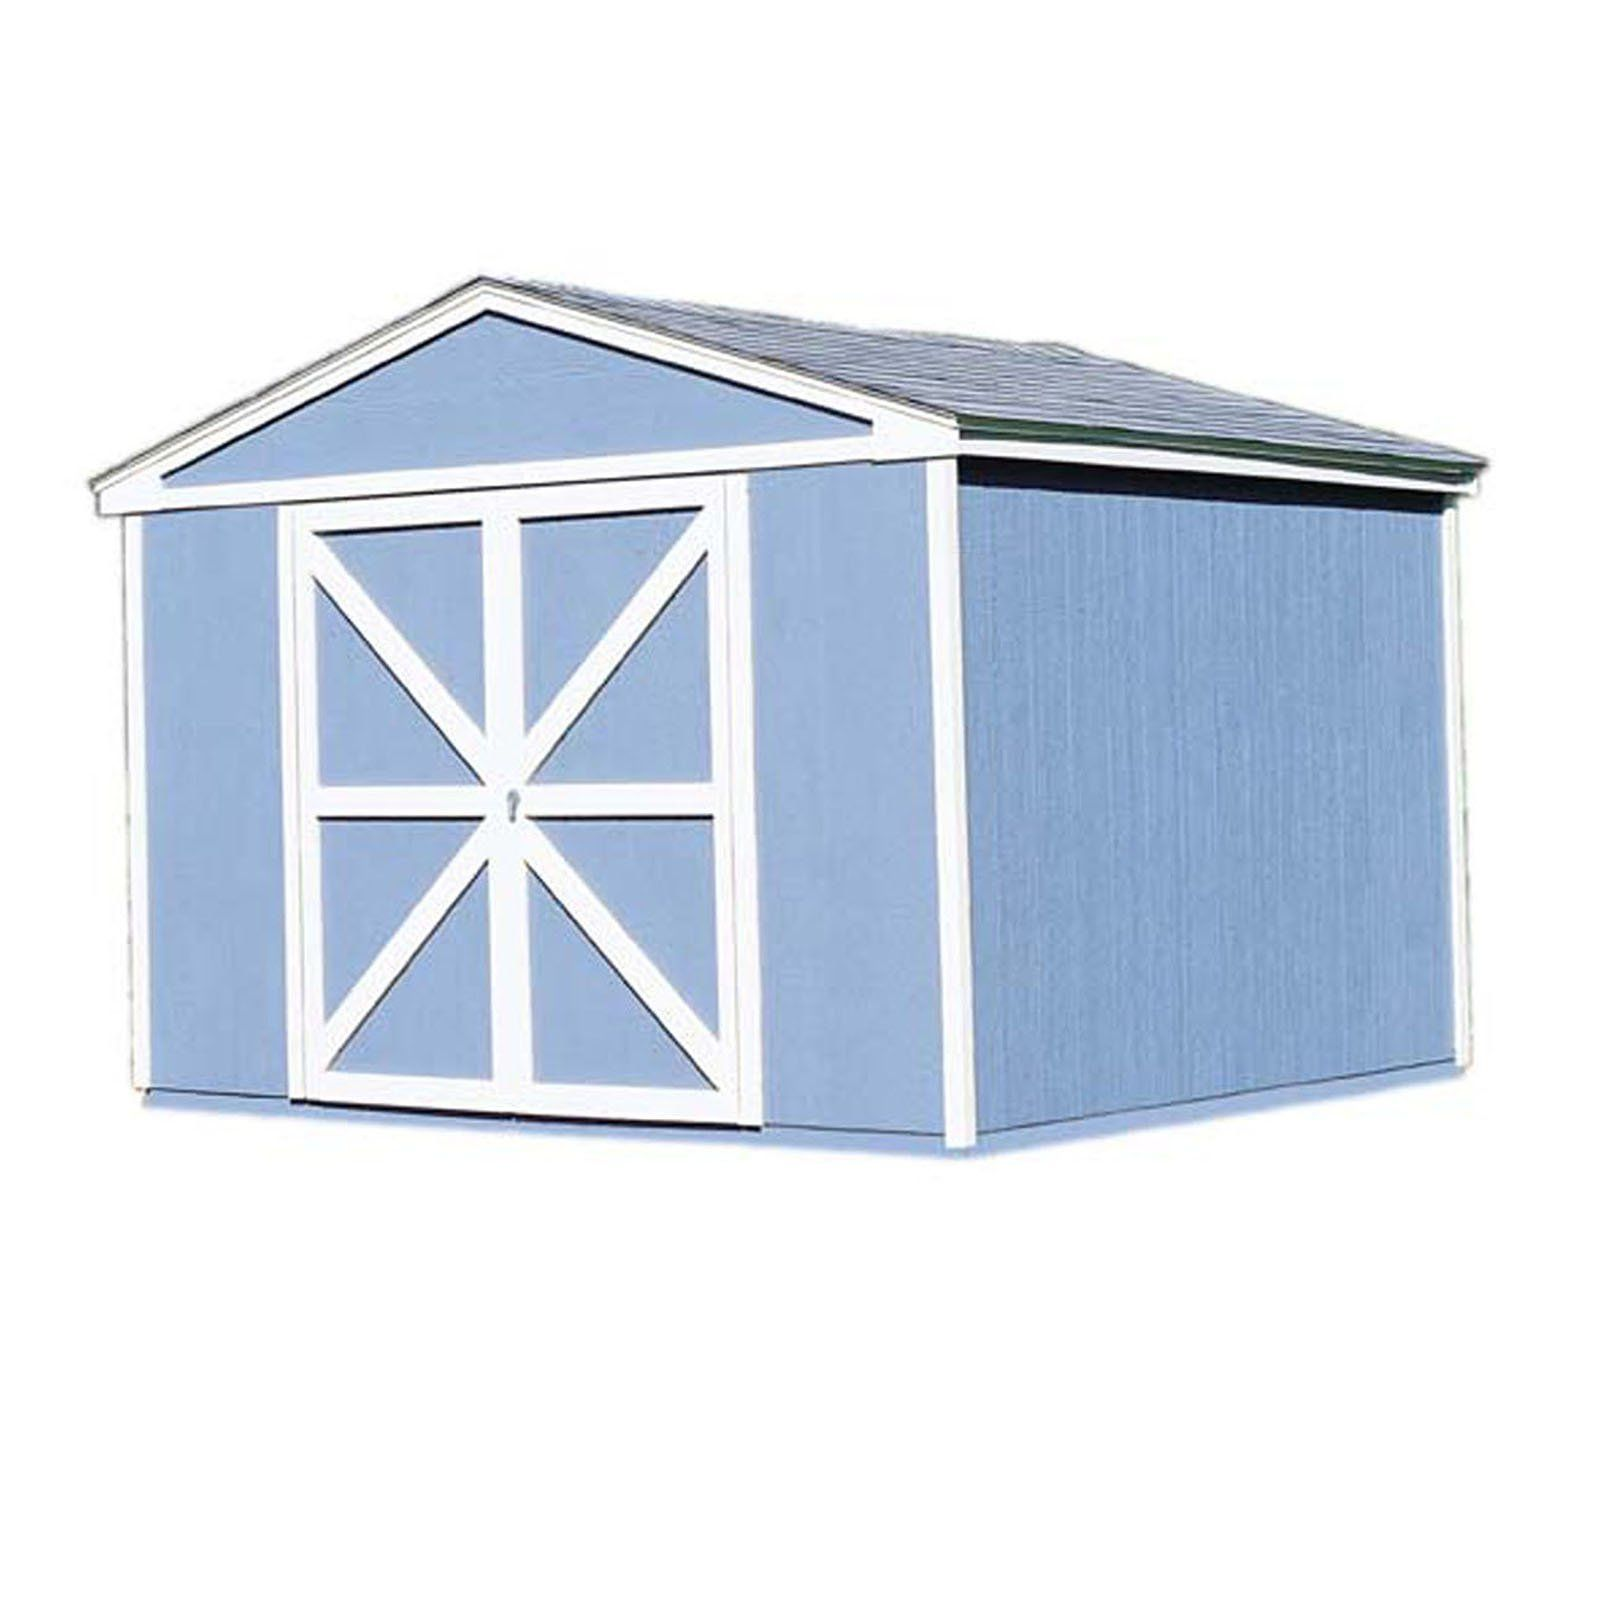 Handy Home Somerset Storage Shed 10 x 8 ft 4